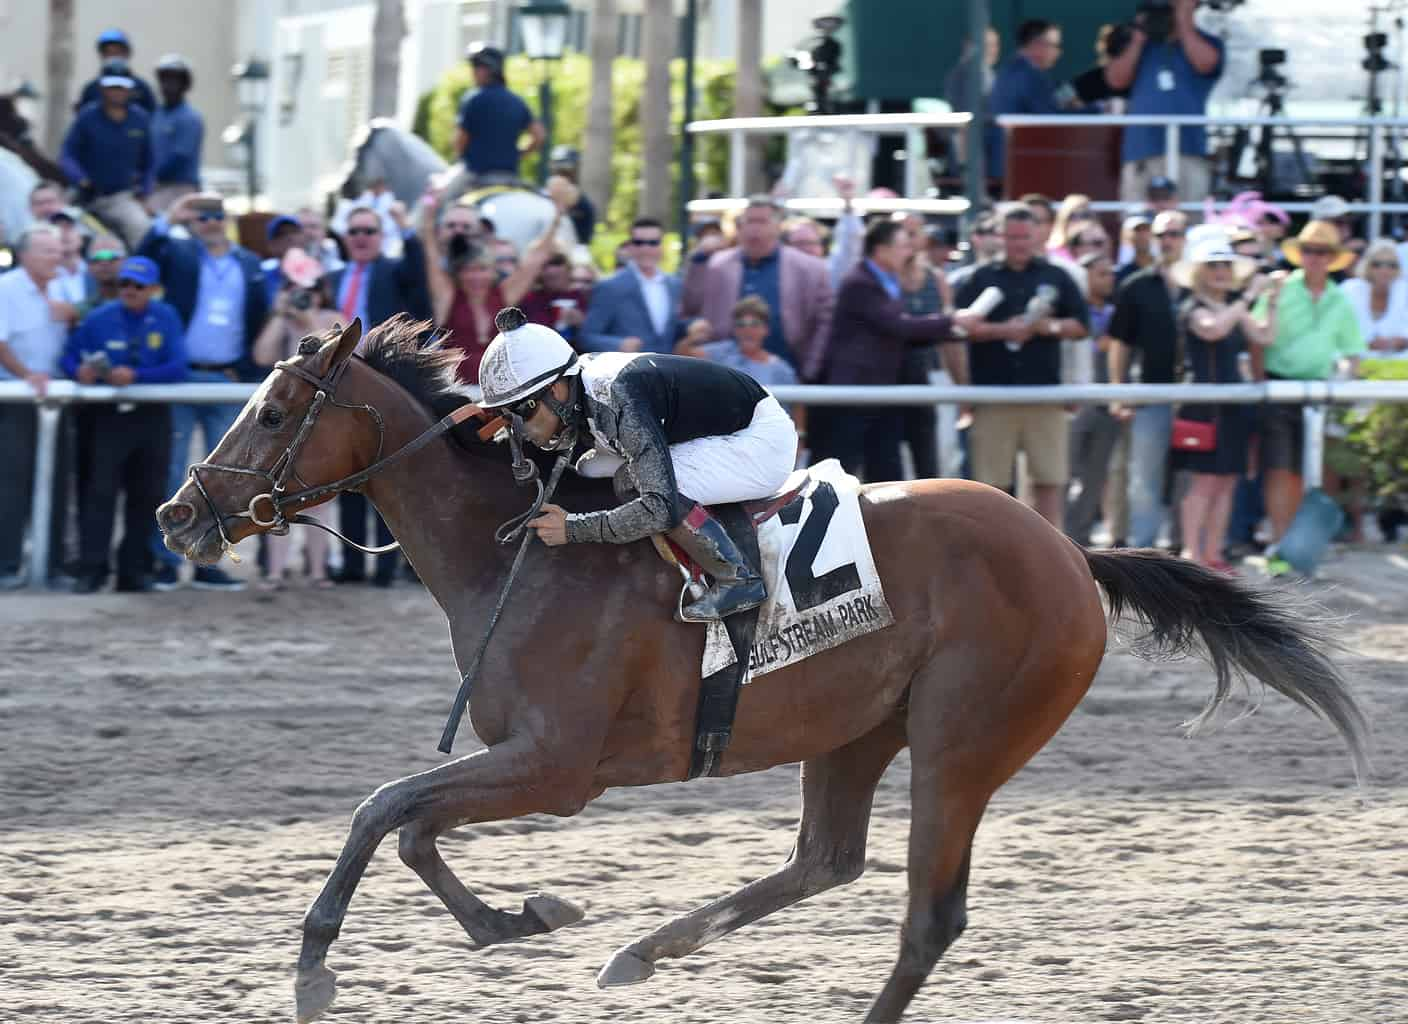 Derby streak set in 1882 broken by 3-year-old Justify